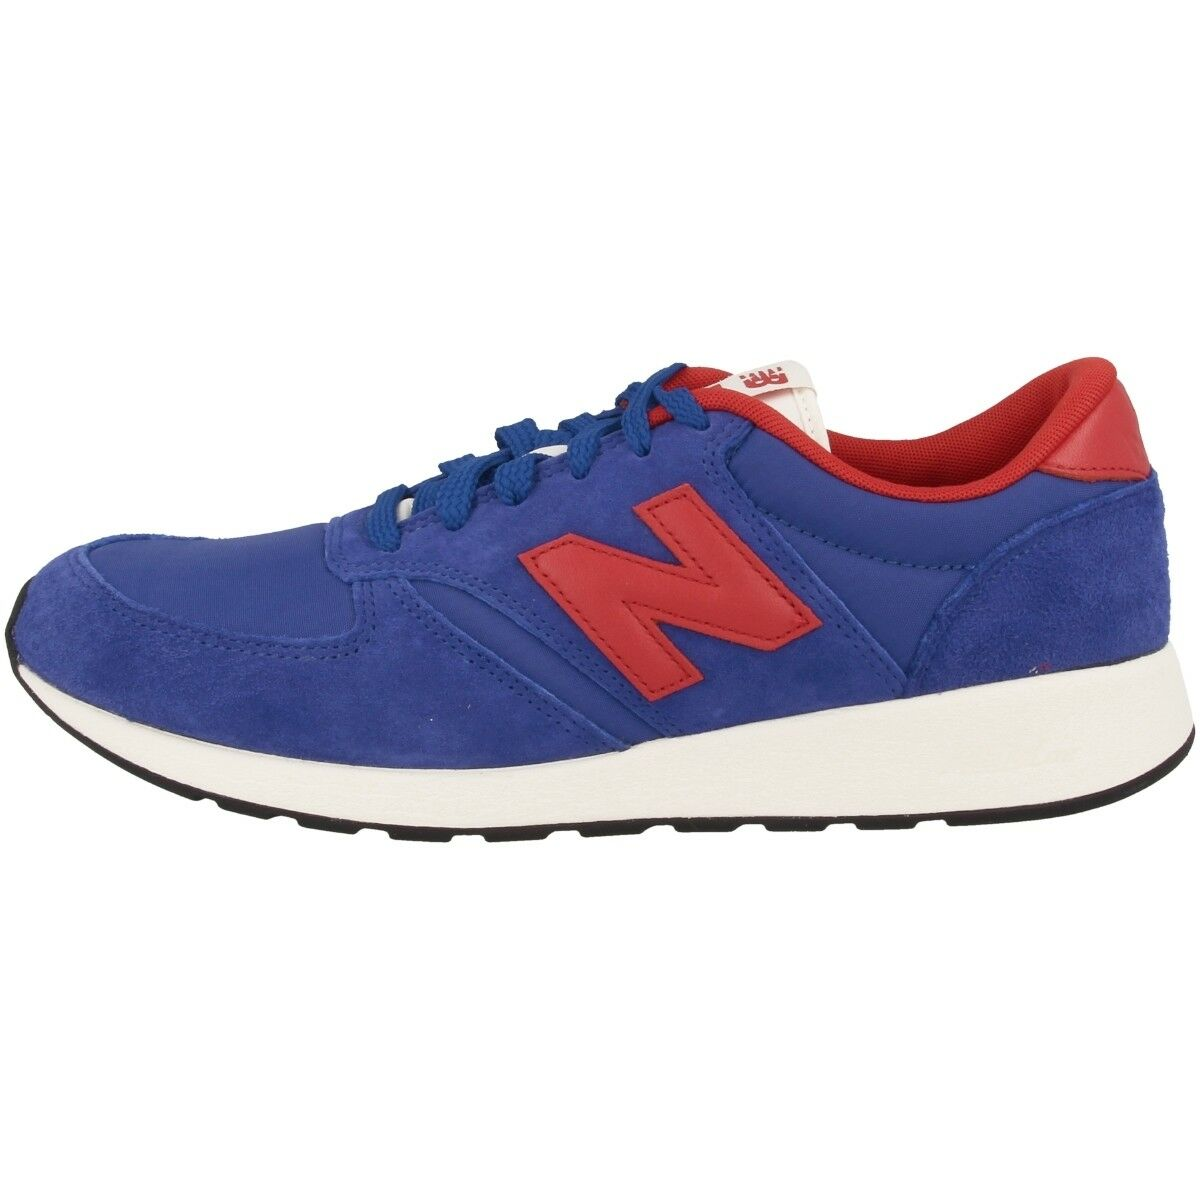 New Balance ML574 MRL 420 SM Zapatos mrl420sm Zapatillas Azul,Rojo ML574 Balance 373 410 576 3b3bf1